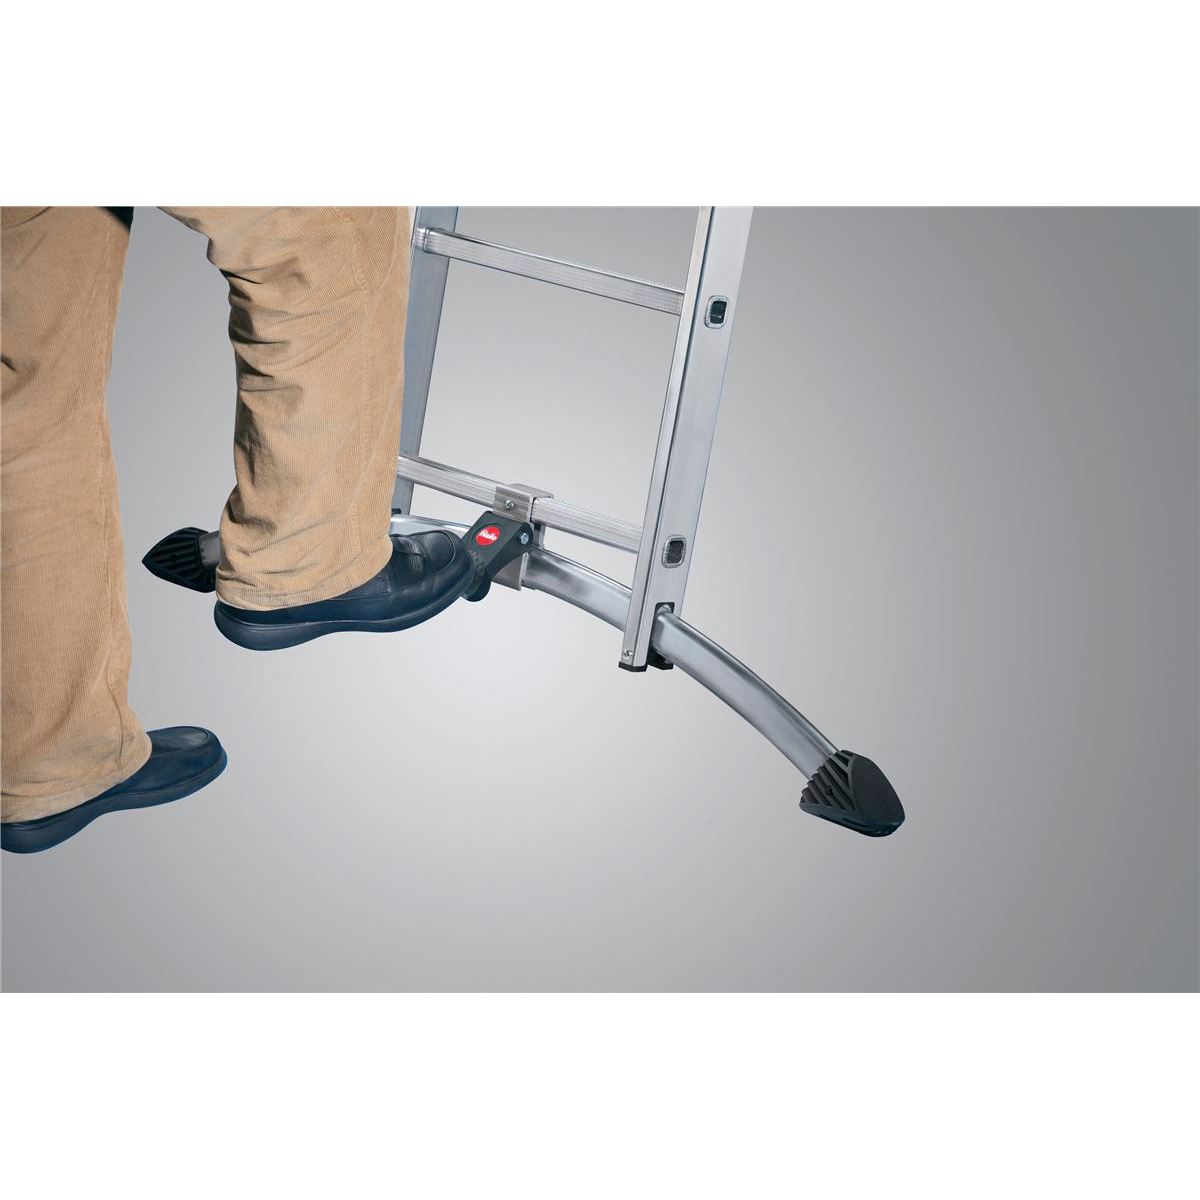 Combi Ladder 3 Section Capacity 150kg Rungs 2x6 and 1x5 for H4.8m 15.5kg Aluminium